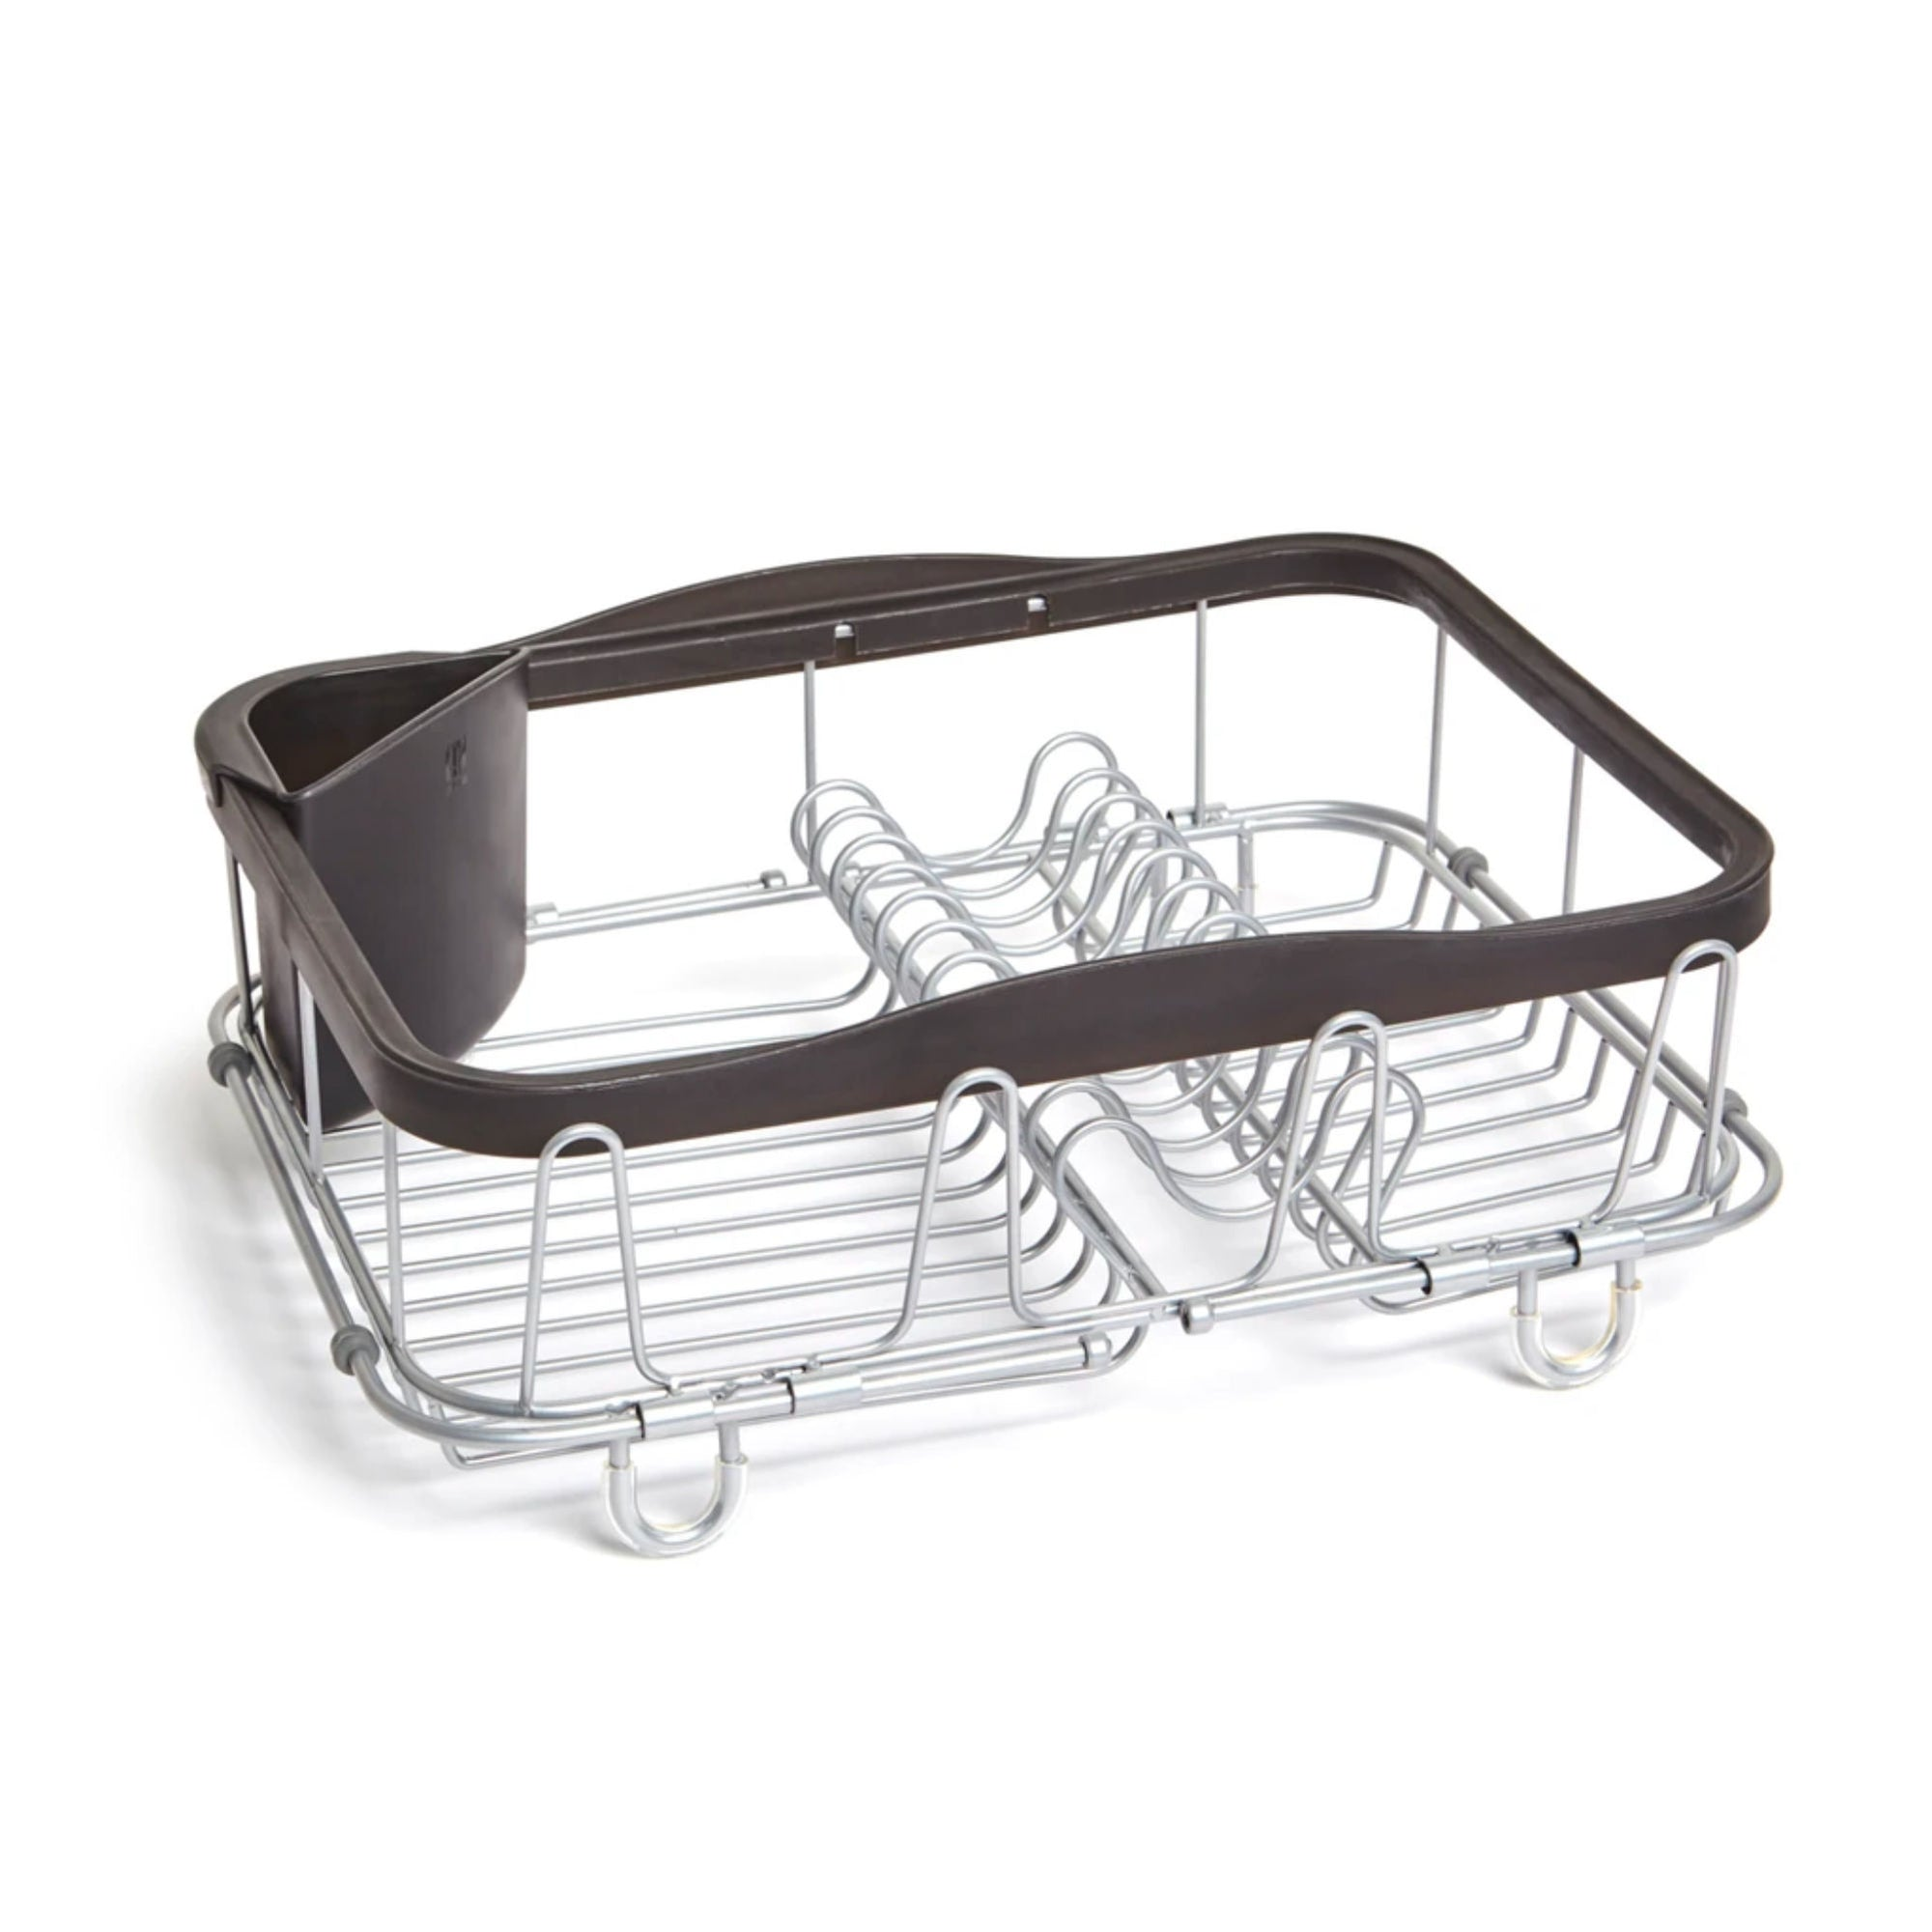 Umbra Sinkin multi use dish rack